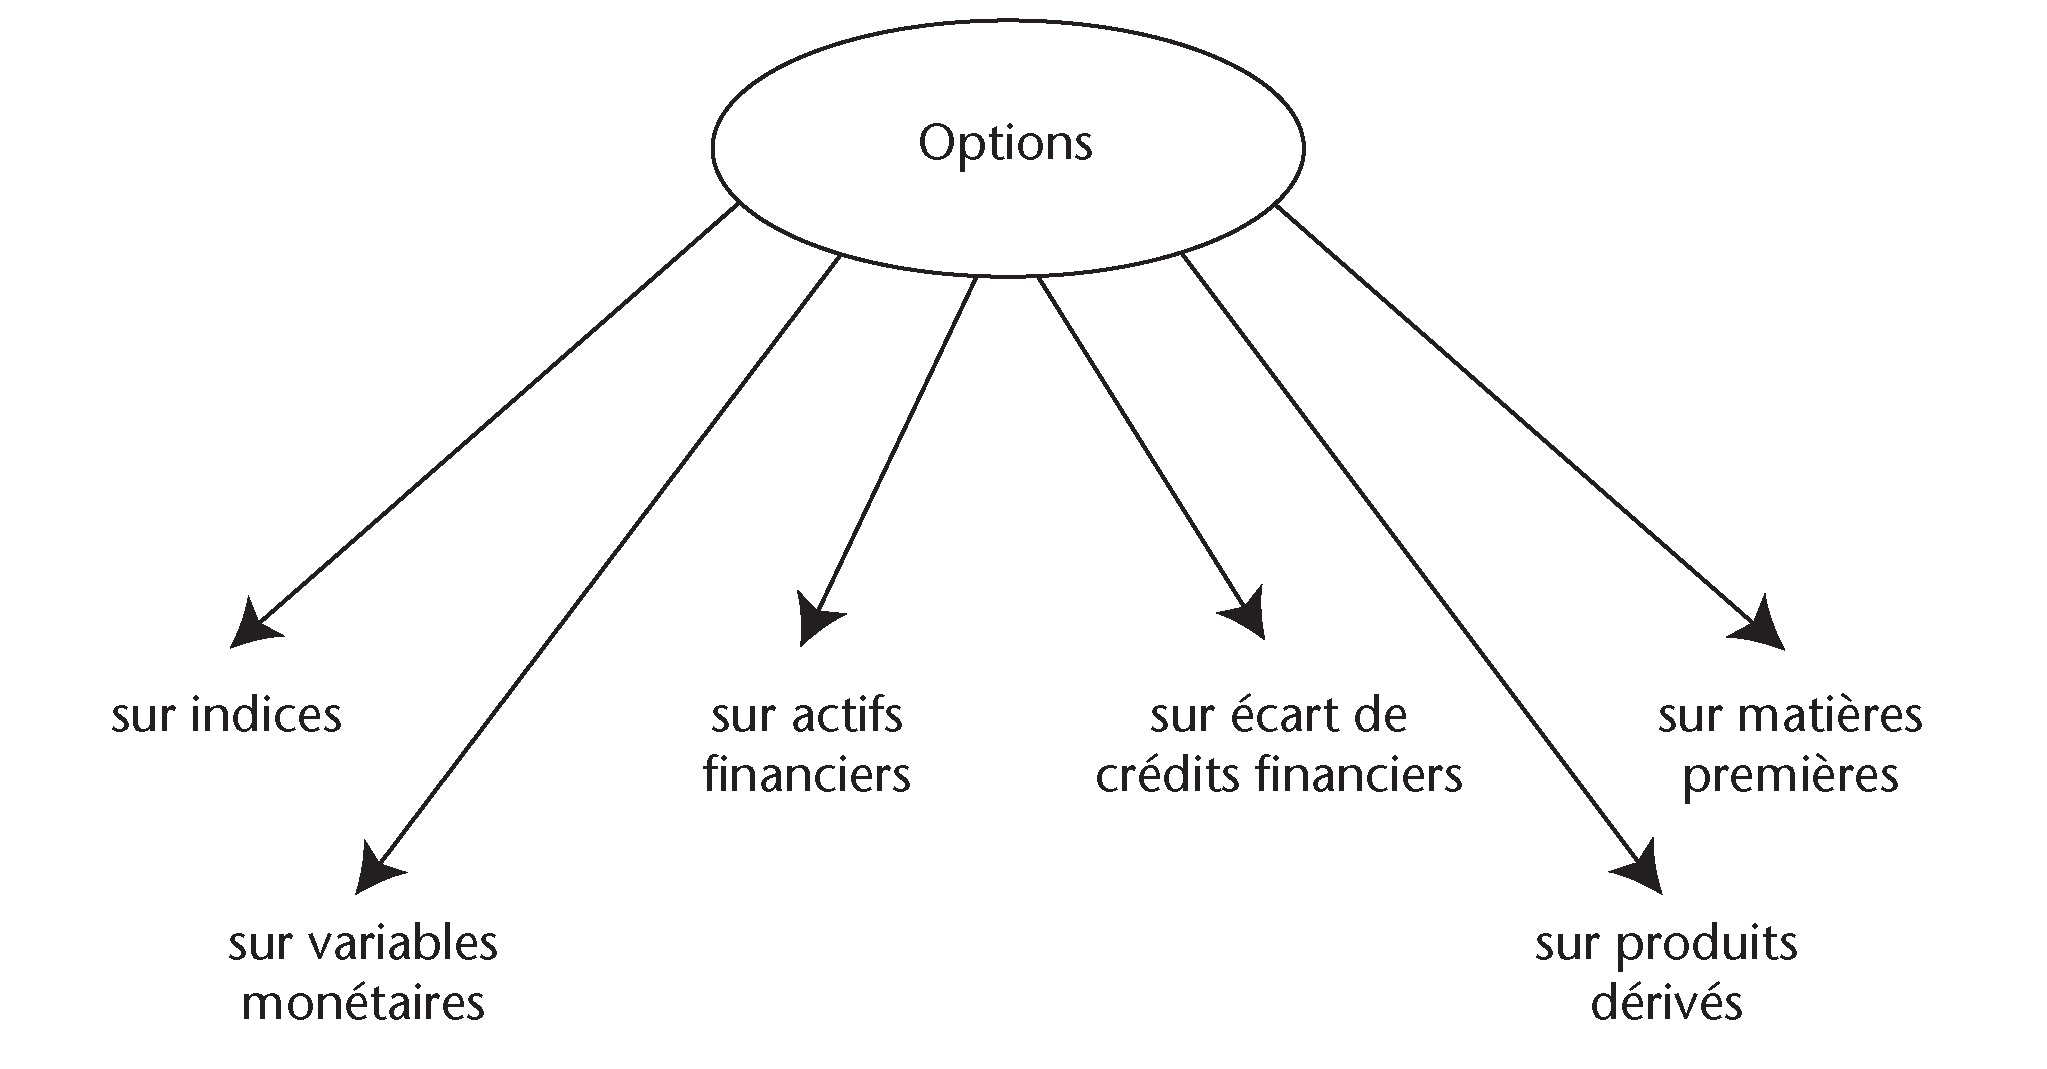 Formation à la bourse en ligne : les options